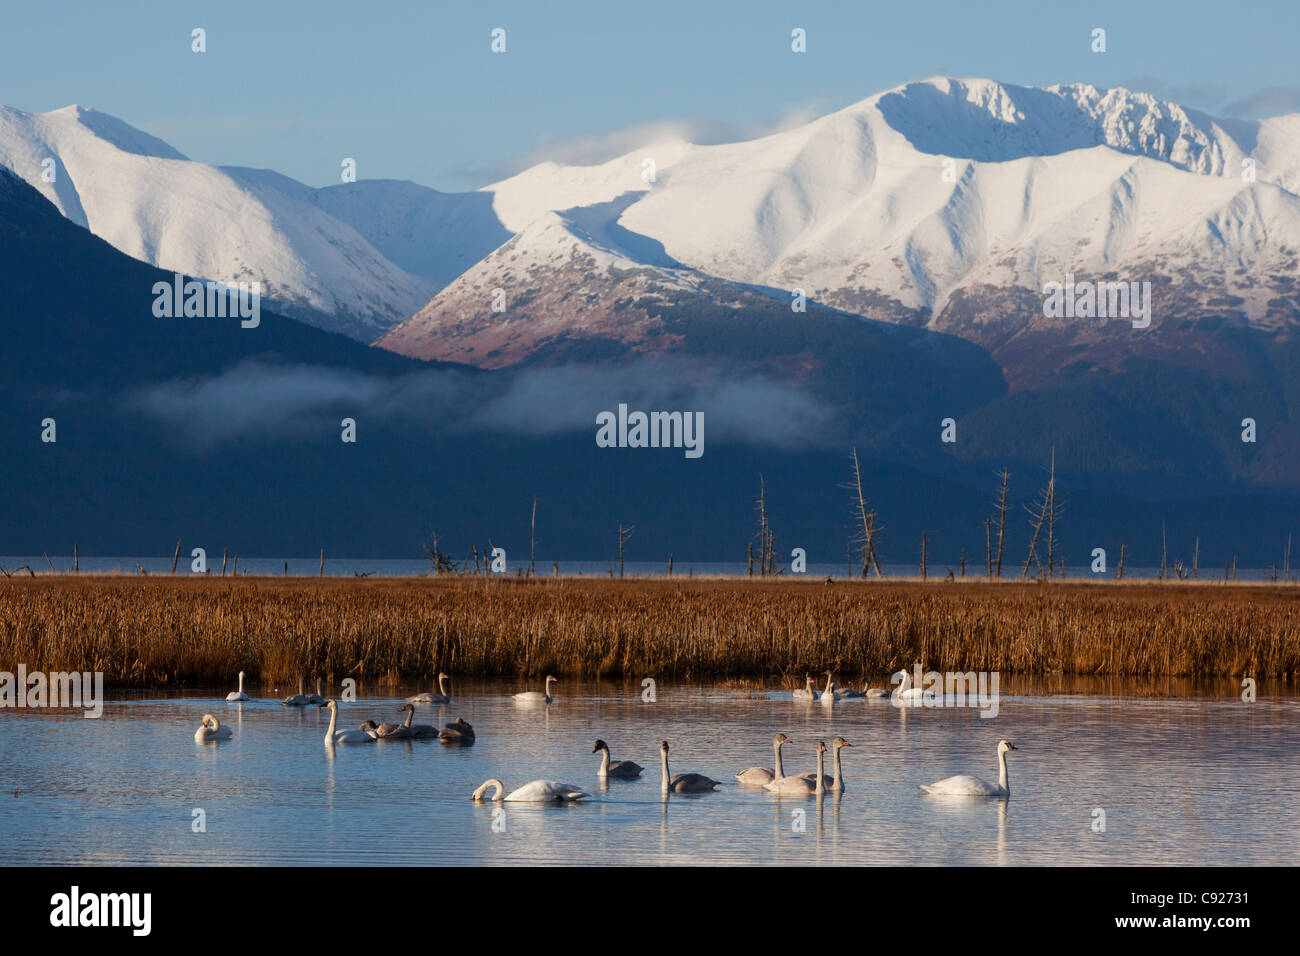 A grouping of Tundra and Trumpeter Swans feed in a pond near Girdwood, Turnagain Arm, Alaska - Stock Image